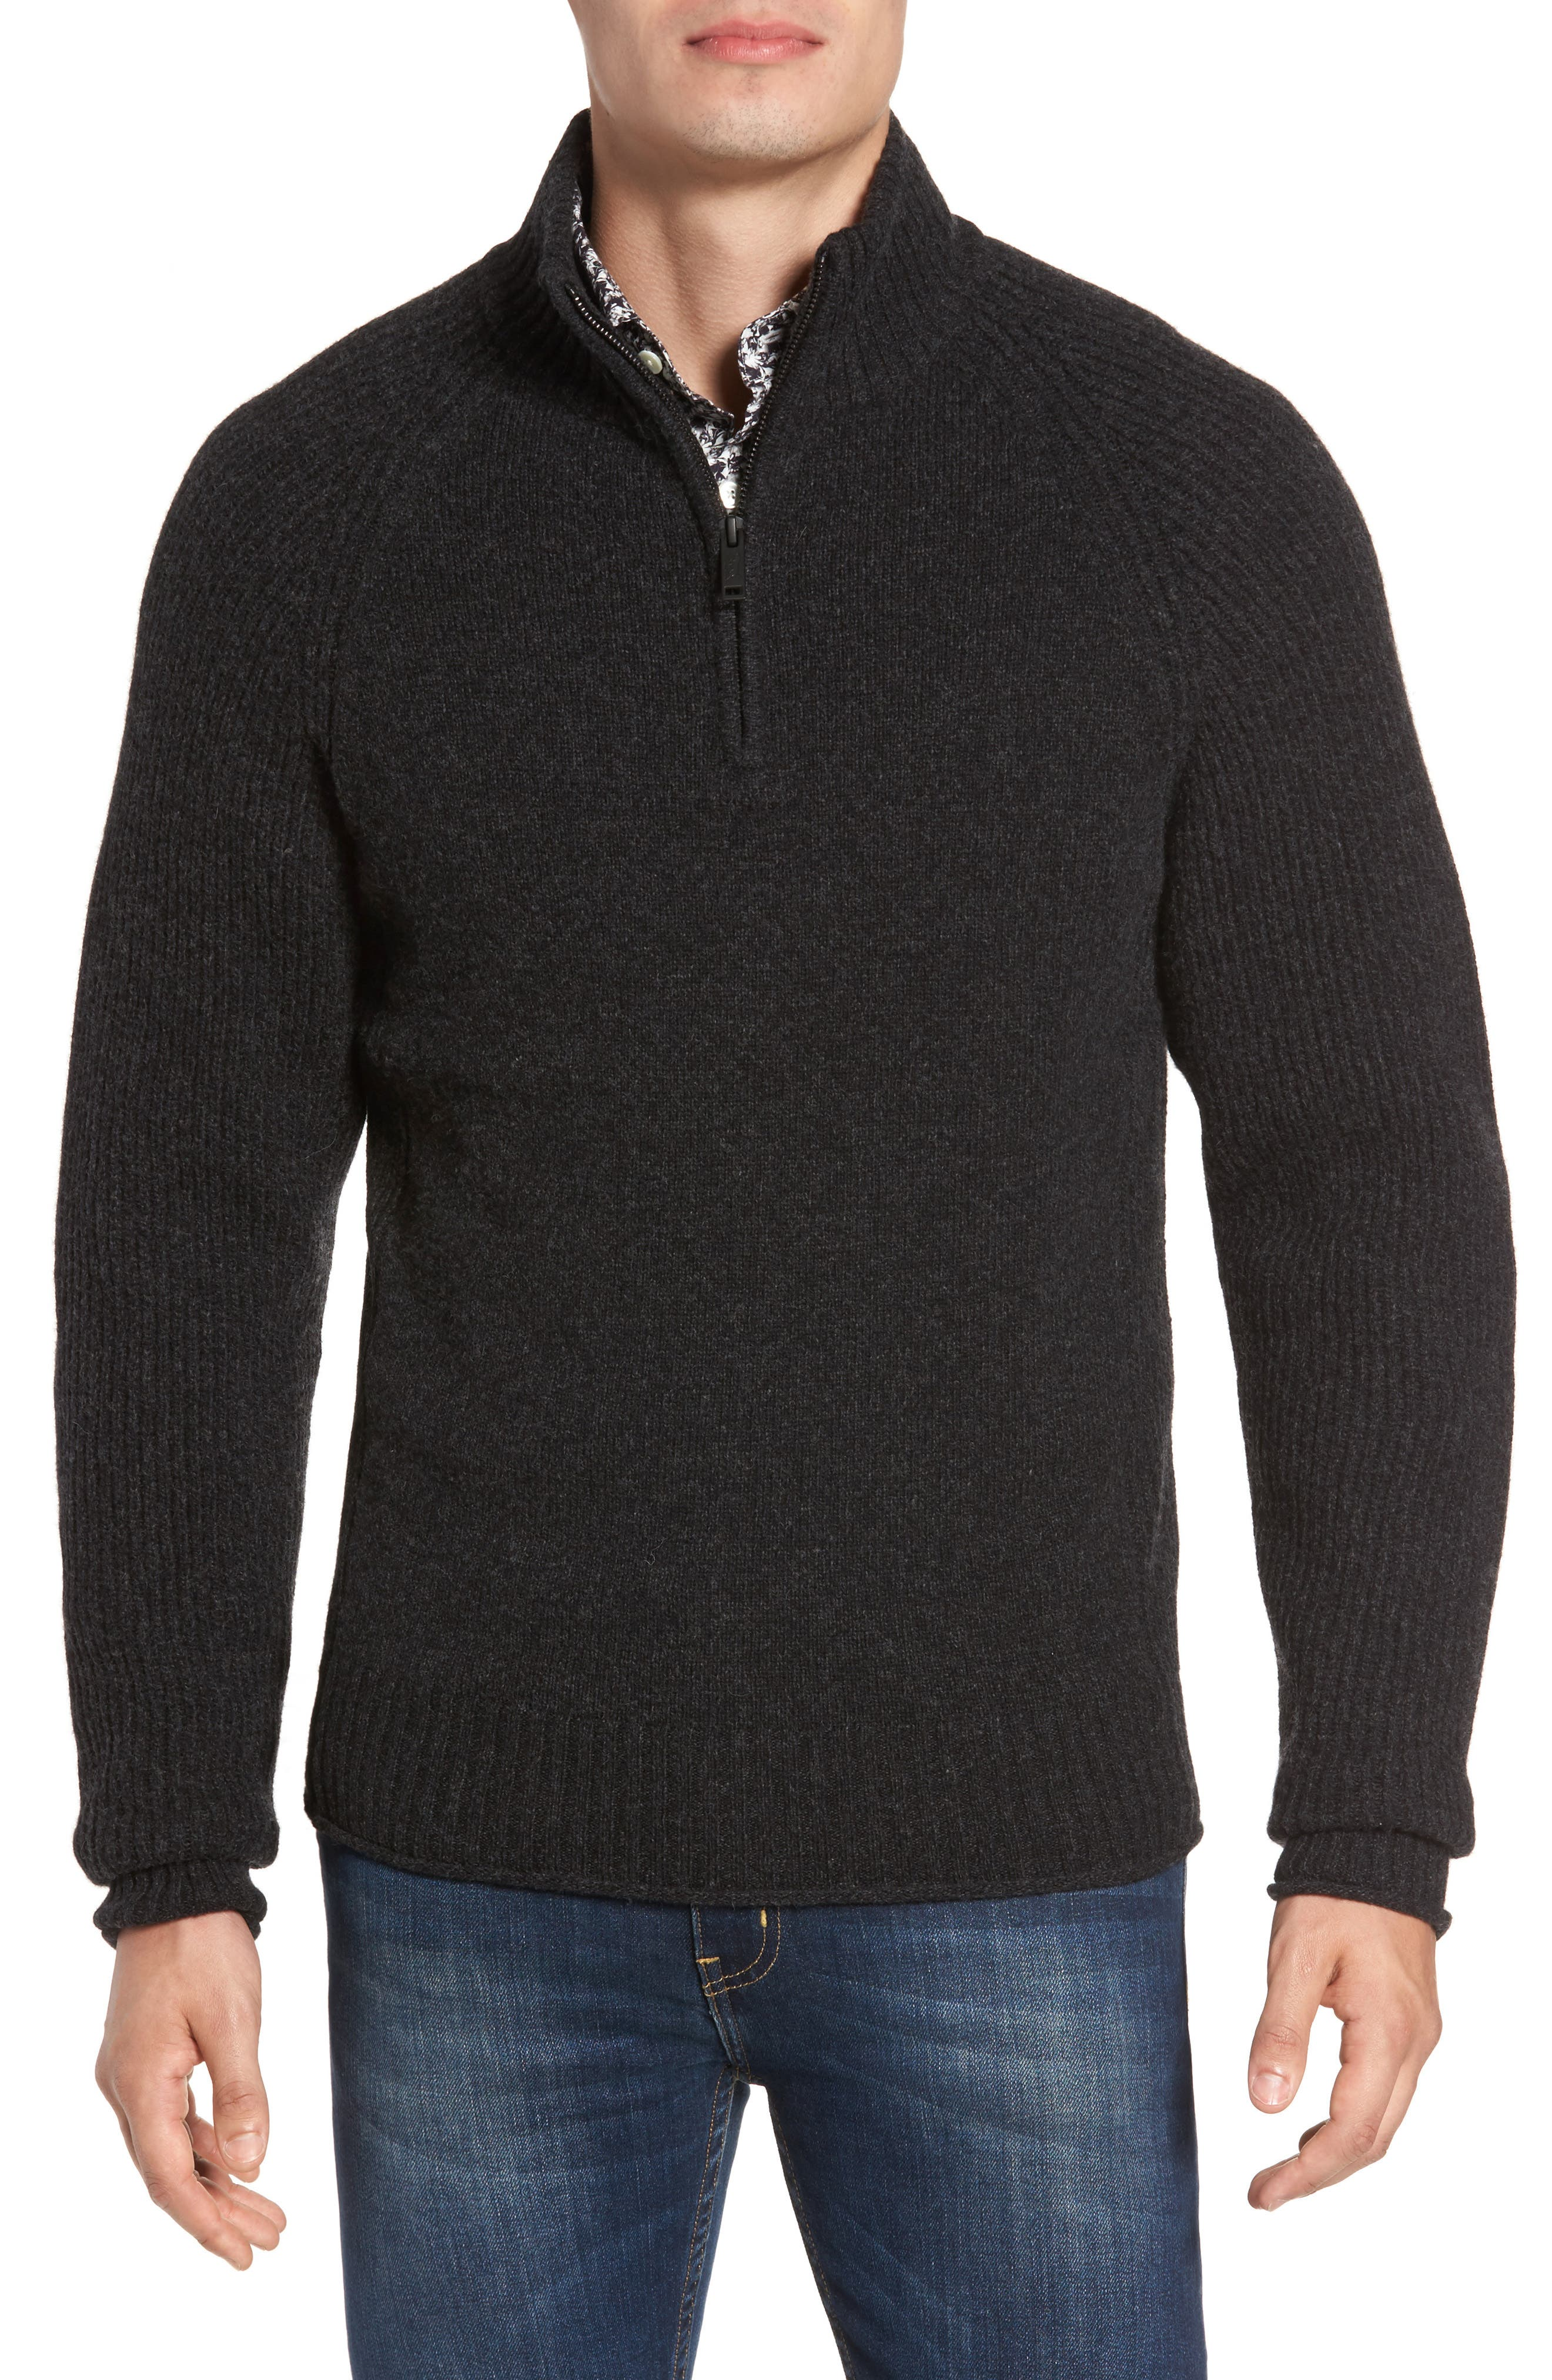 Stredwick Lambswool Sweater,                         Main,                         color, 021